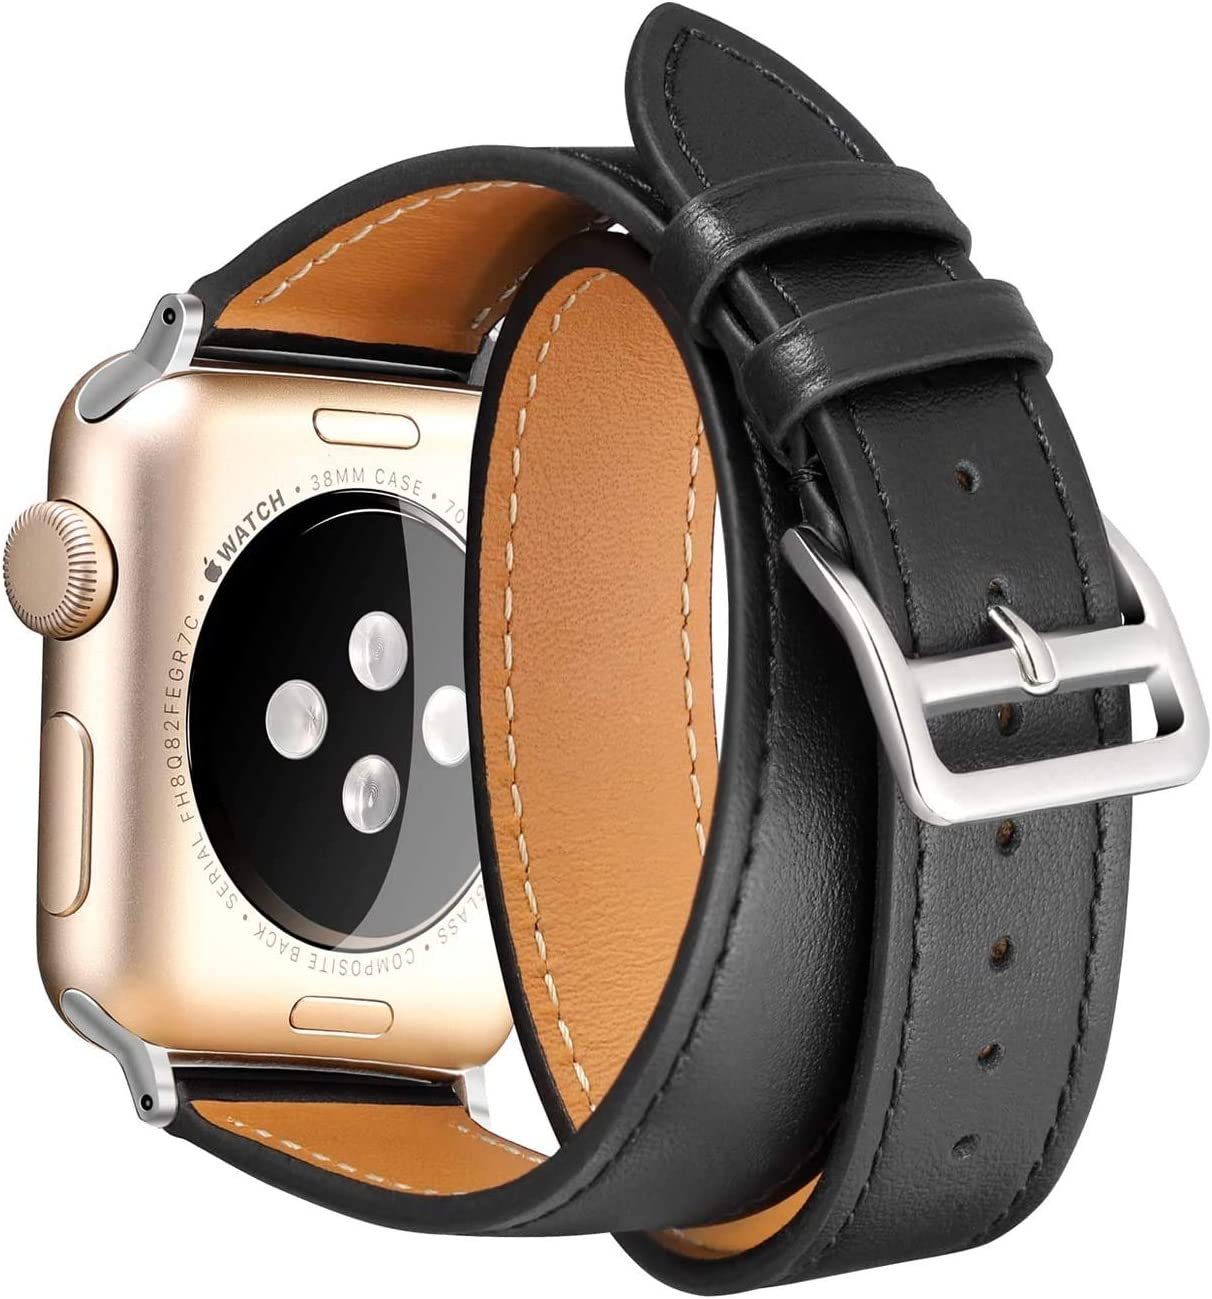 Faytop Double Wrap Genuine Leather Strap for Apple Watch Band 38mm 40mm Women & Men's Bracelet Replacement for Apple Watch Band Series 5/4/3/2/1 Black